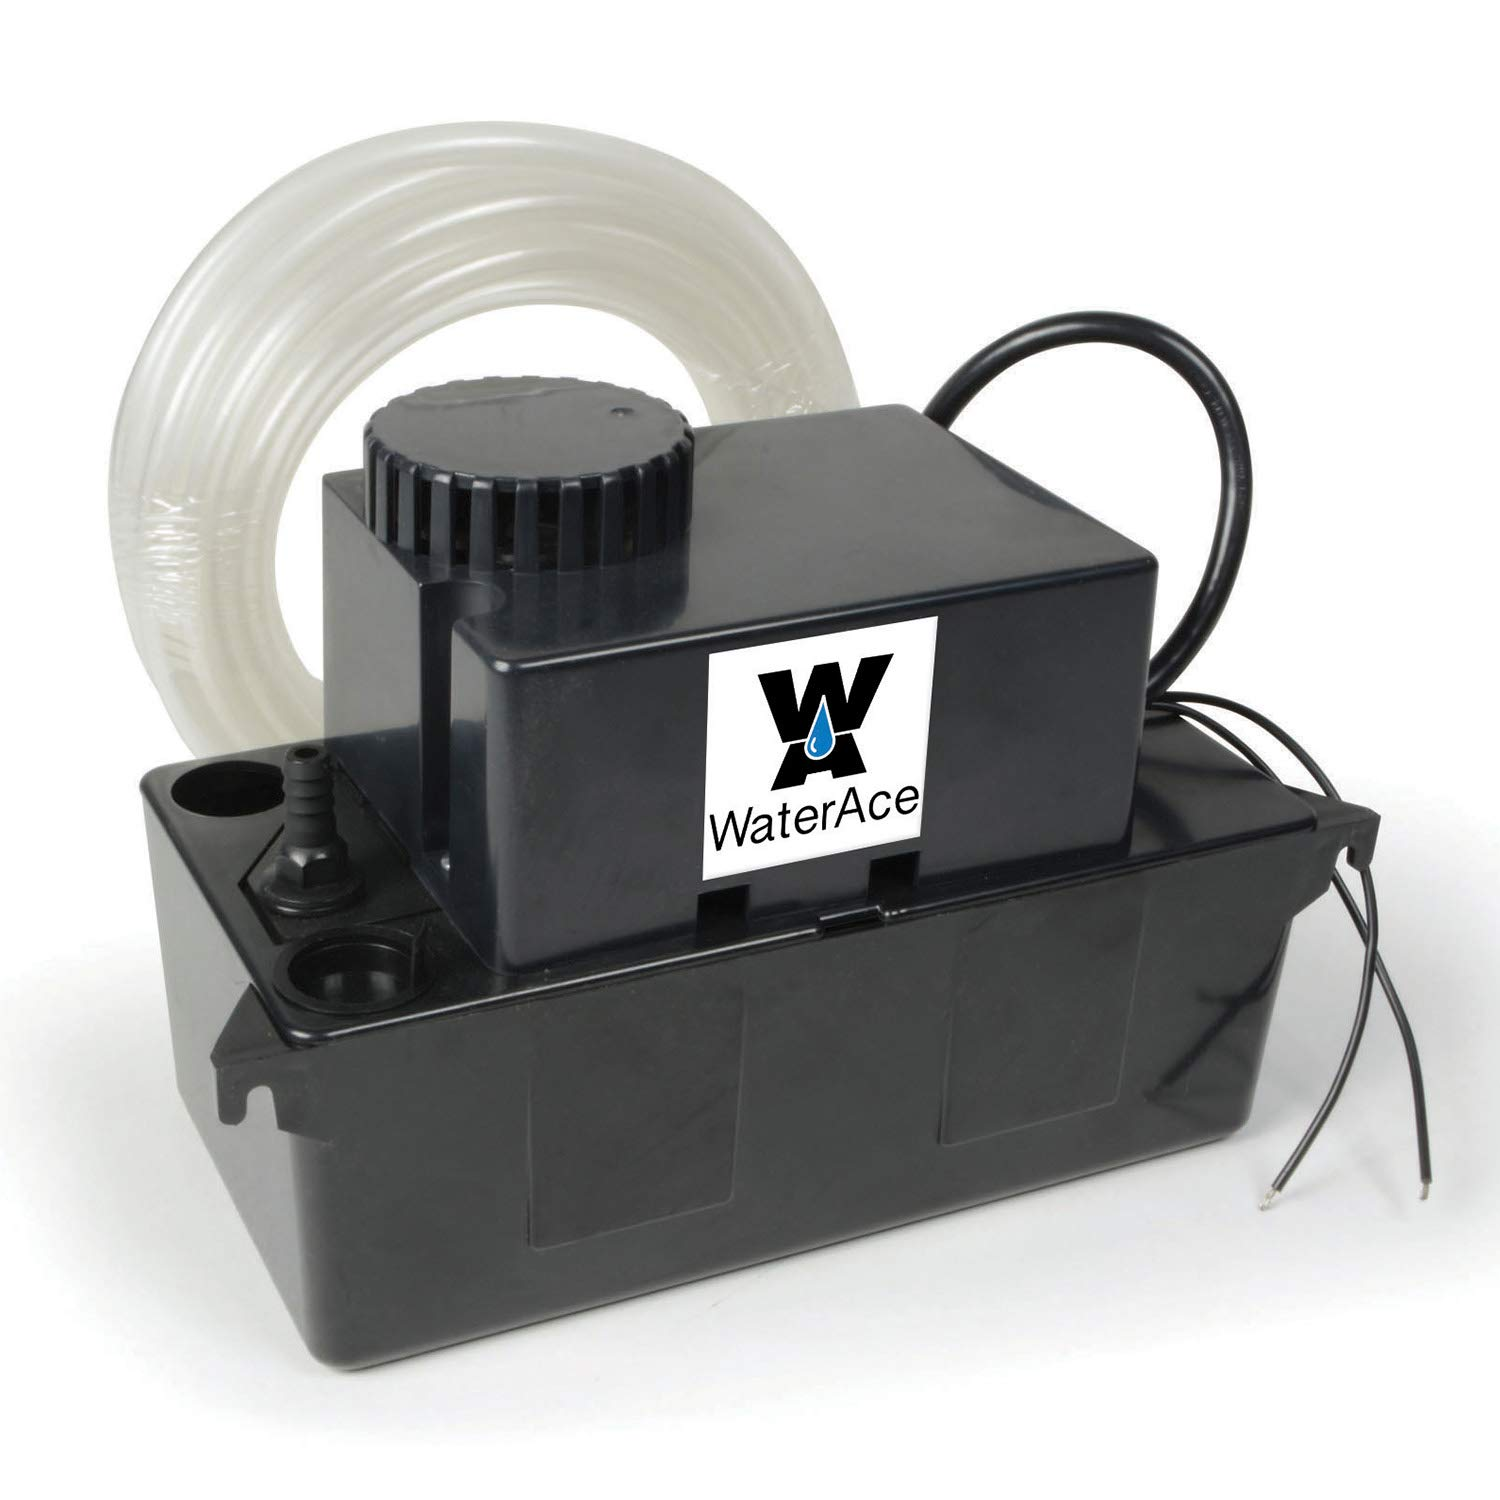 WaterAce WACND Condensate Pump, Black by WaterAce